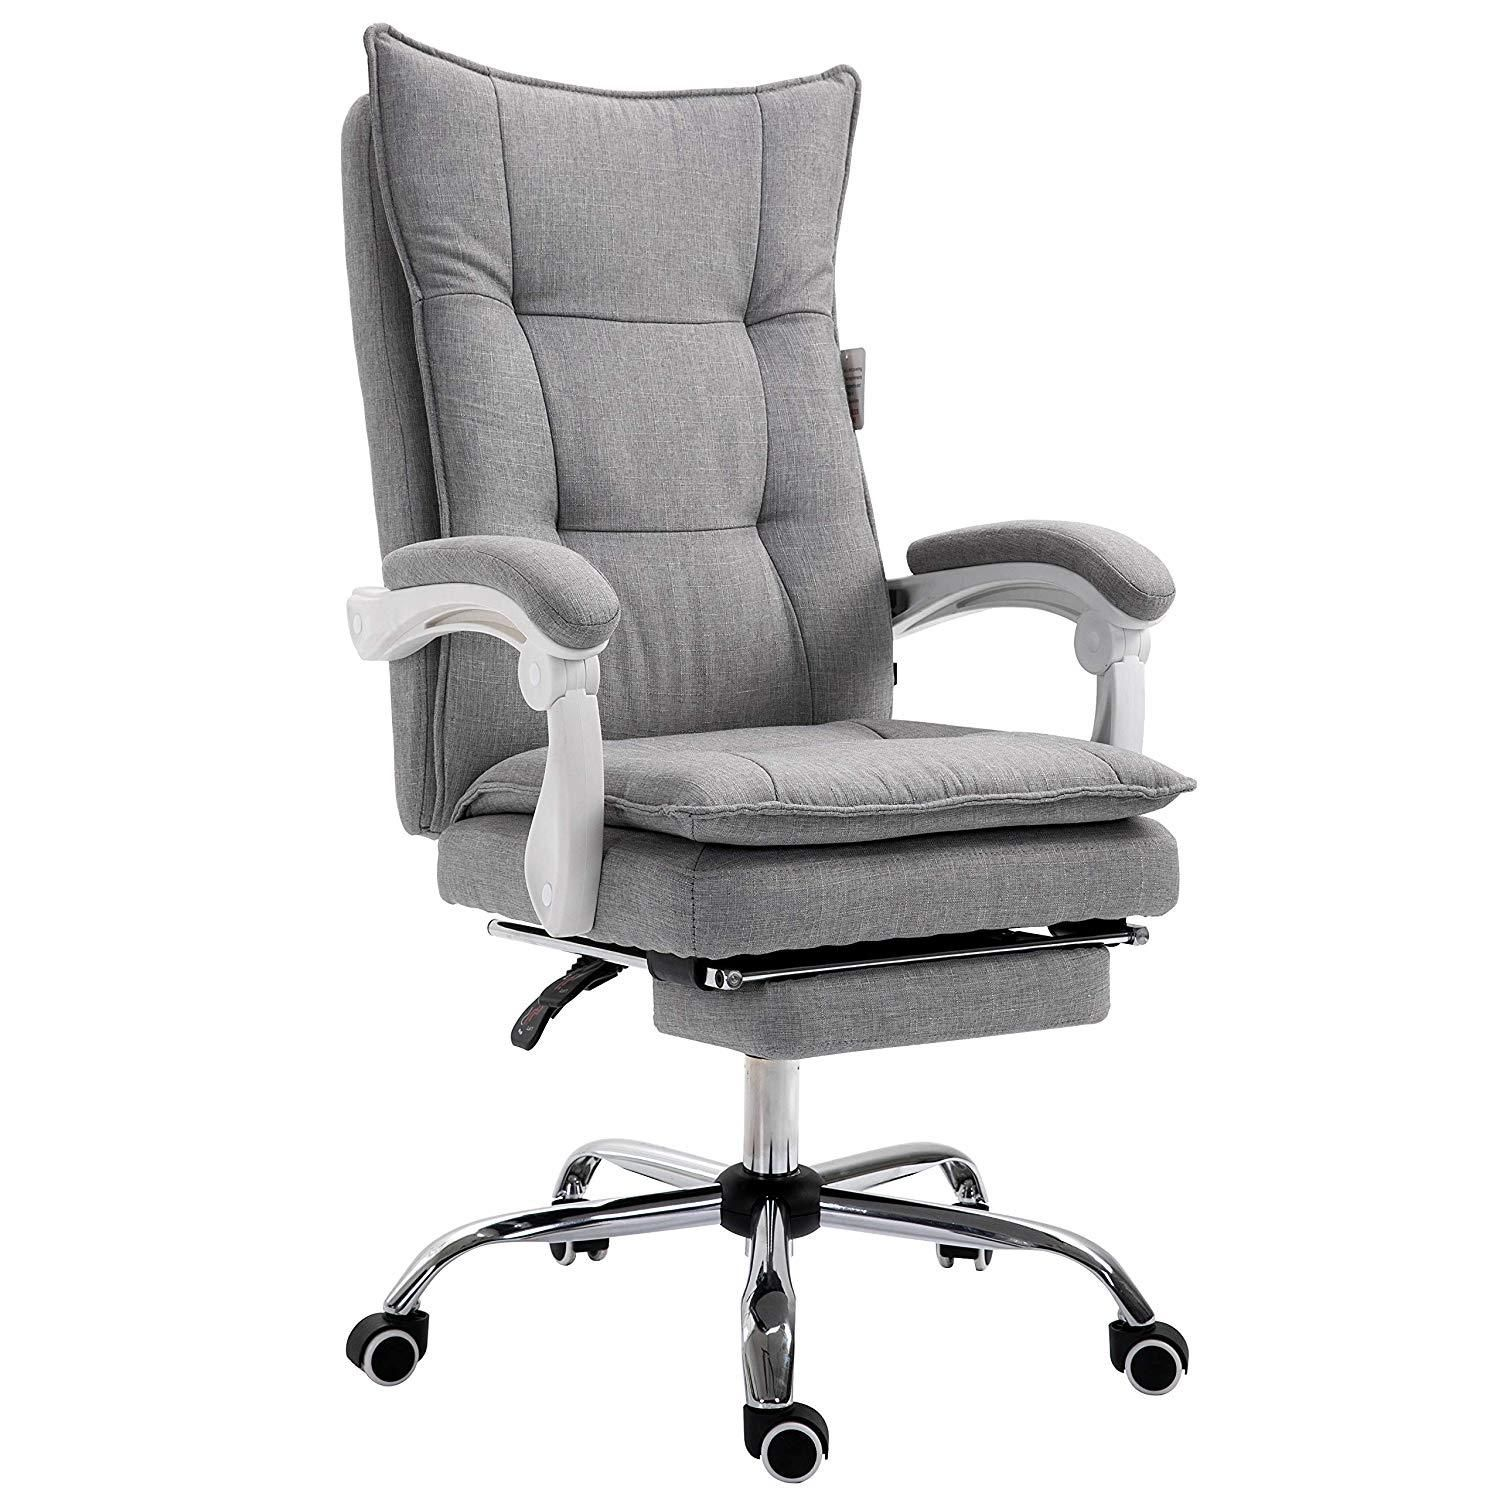 Executive double layer padding recline office desk chair